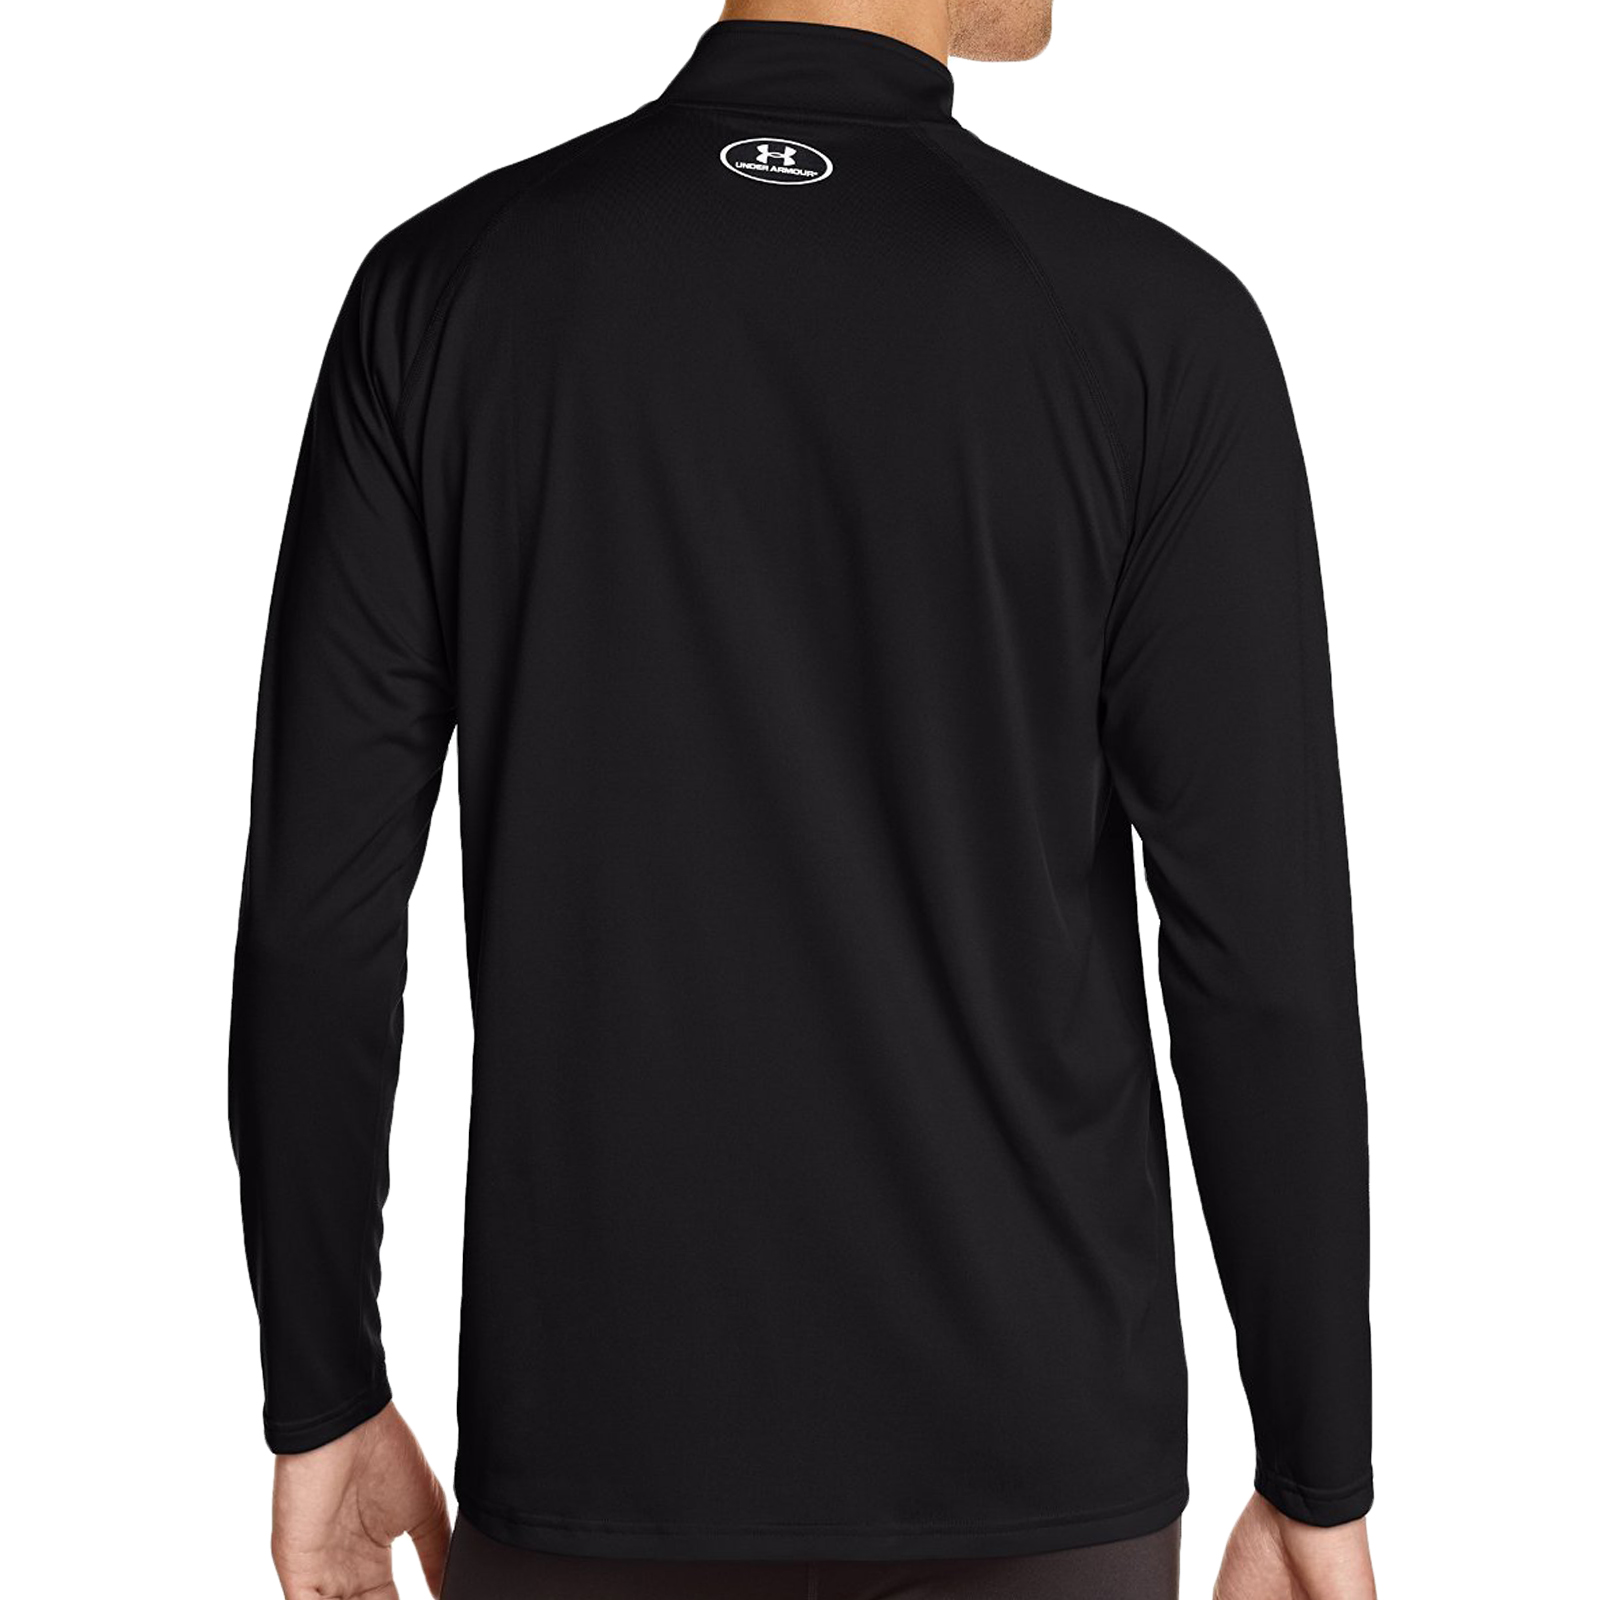 Under Armour Mens Long Sleeve 1 4 Zip Tech Workout